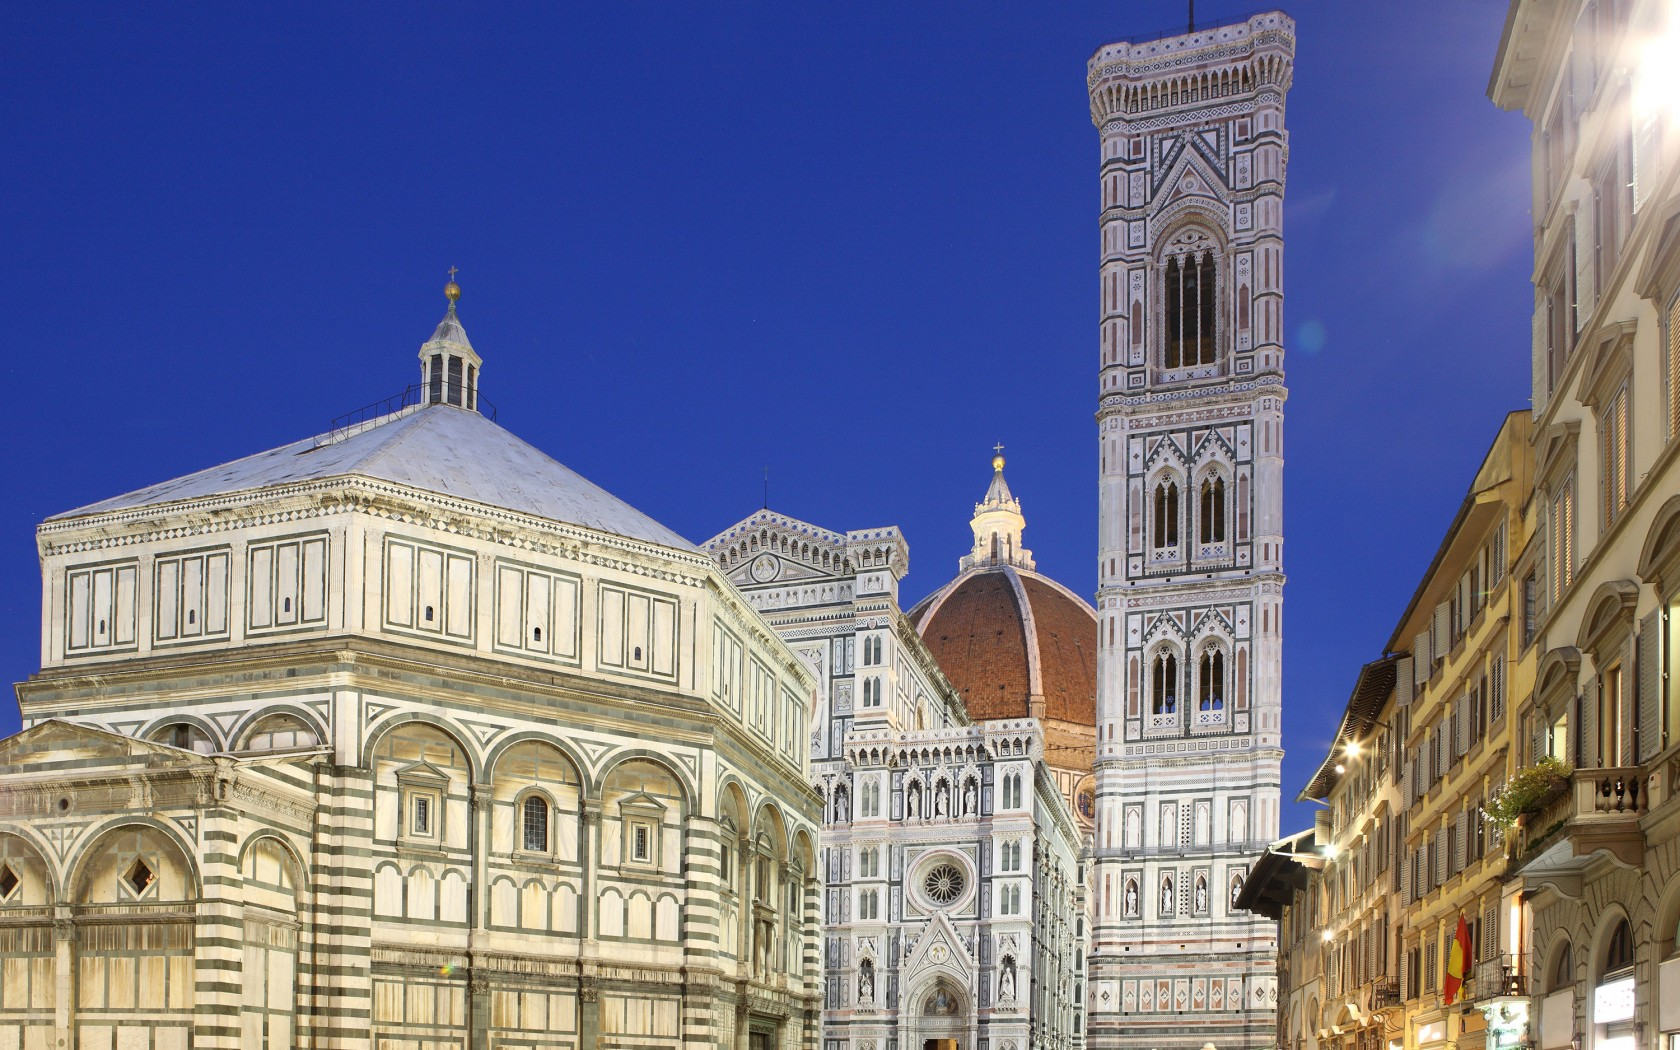 13.-Edited-Florence-806-195-1680x1050